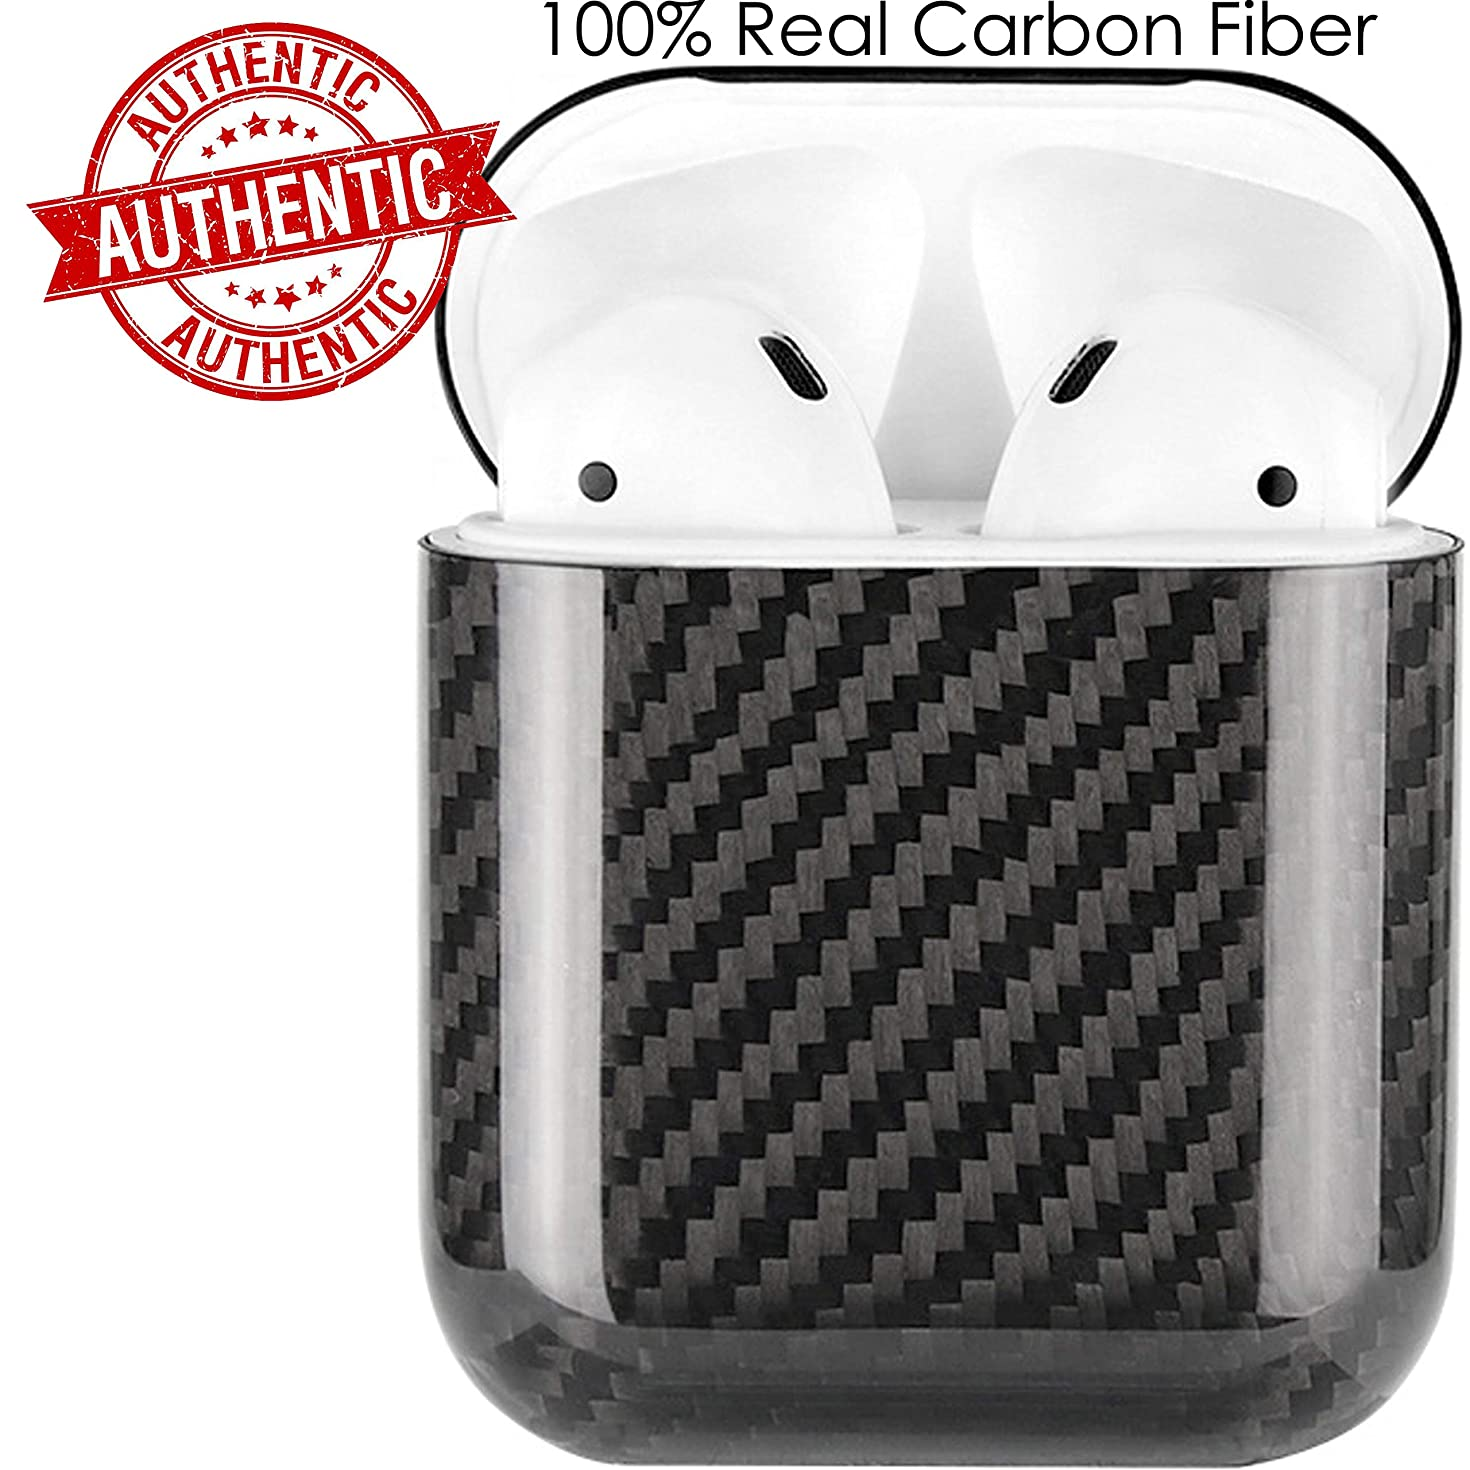 APSkins Real Carbon Fiber Hardshell Case Compatible with Apple AirPods 1 and 2. Comes with APSkins Black Air Pod Skins Wraps (Glossy Black)